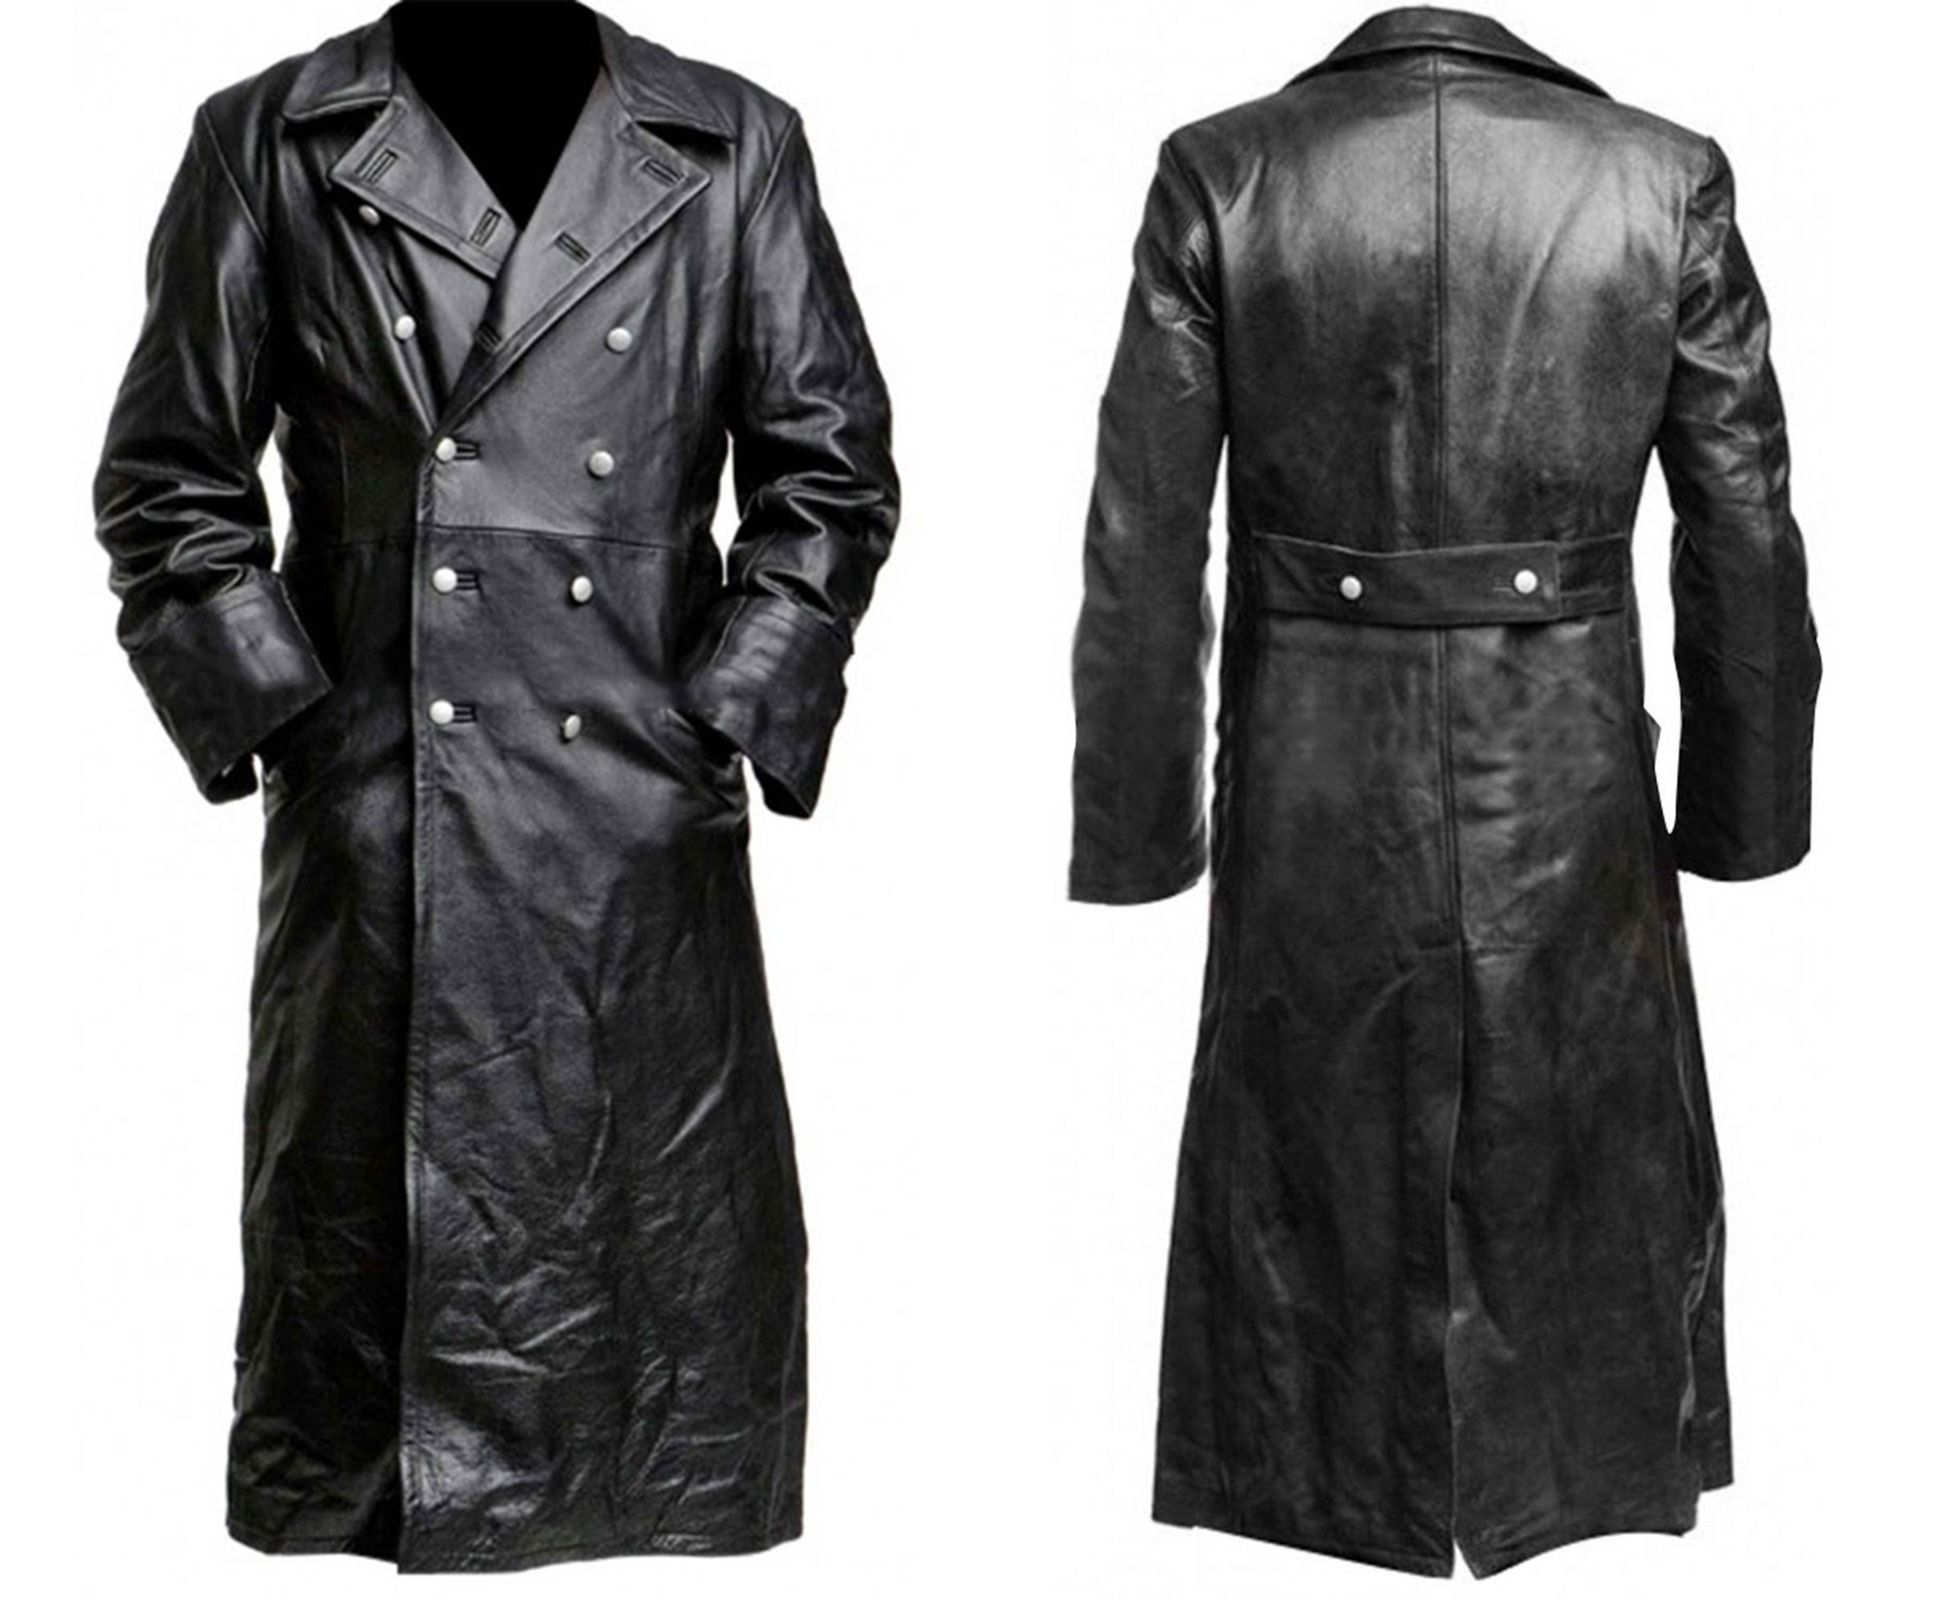 b663ccd3b19  German  Classic Officer  WW2  Military Uniform Black  Leather  Trench  Coat